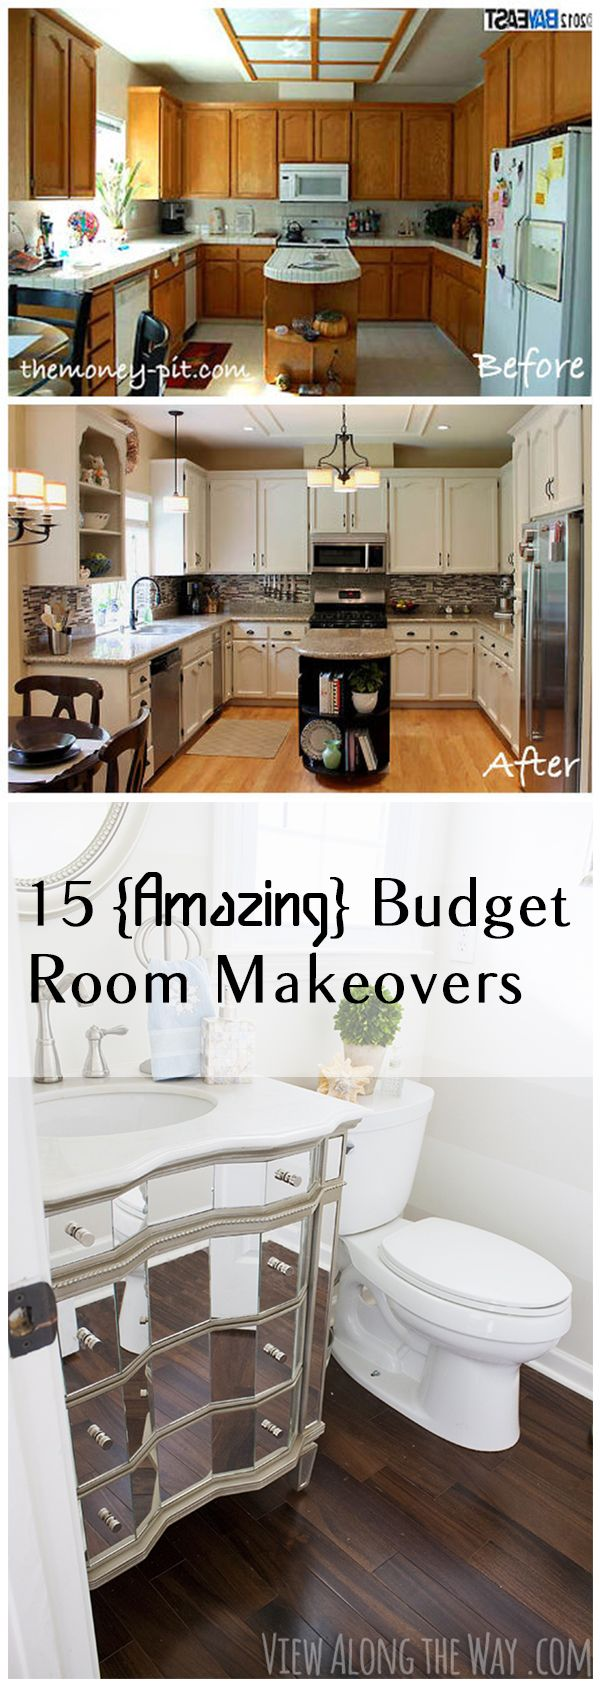 10 Amazing Budget Room Makeovers.  Awesome design and project ideas!